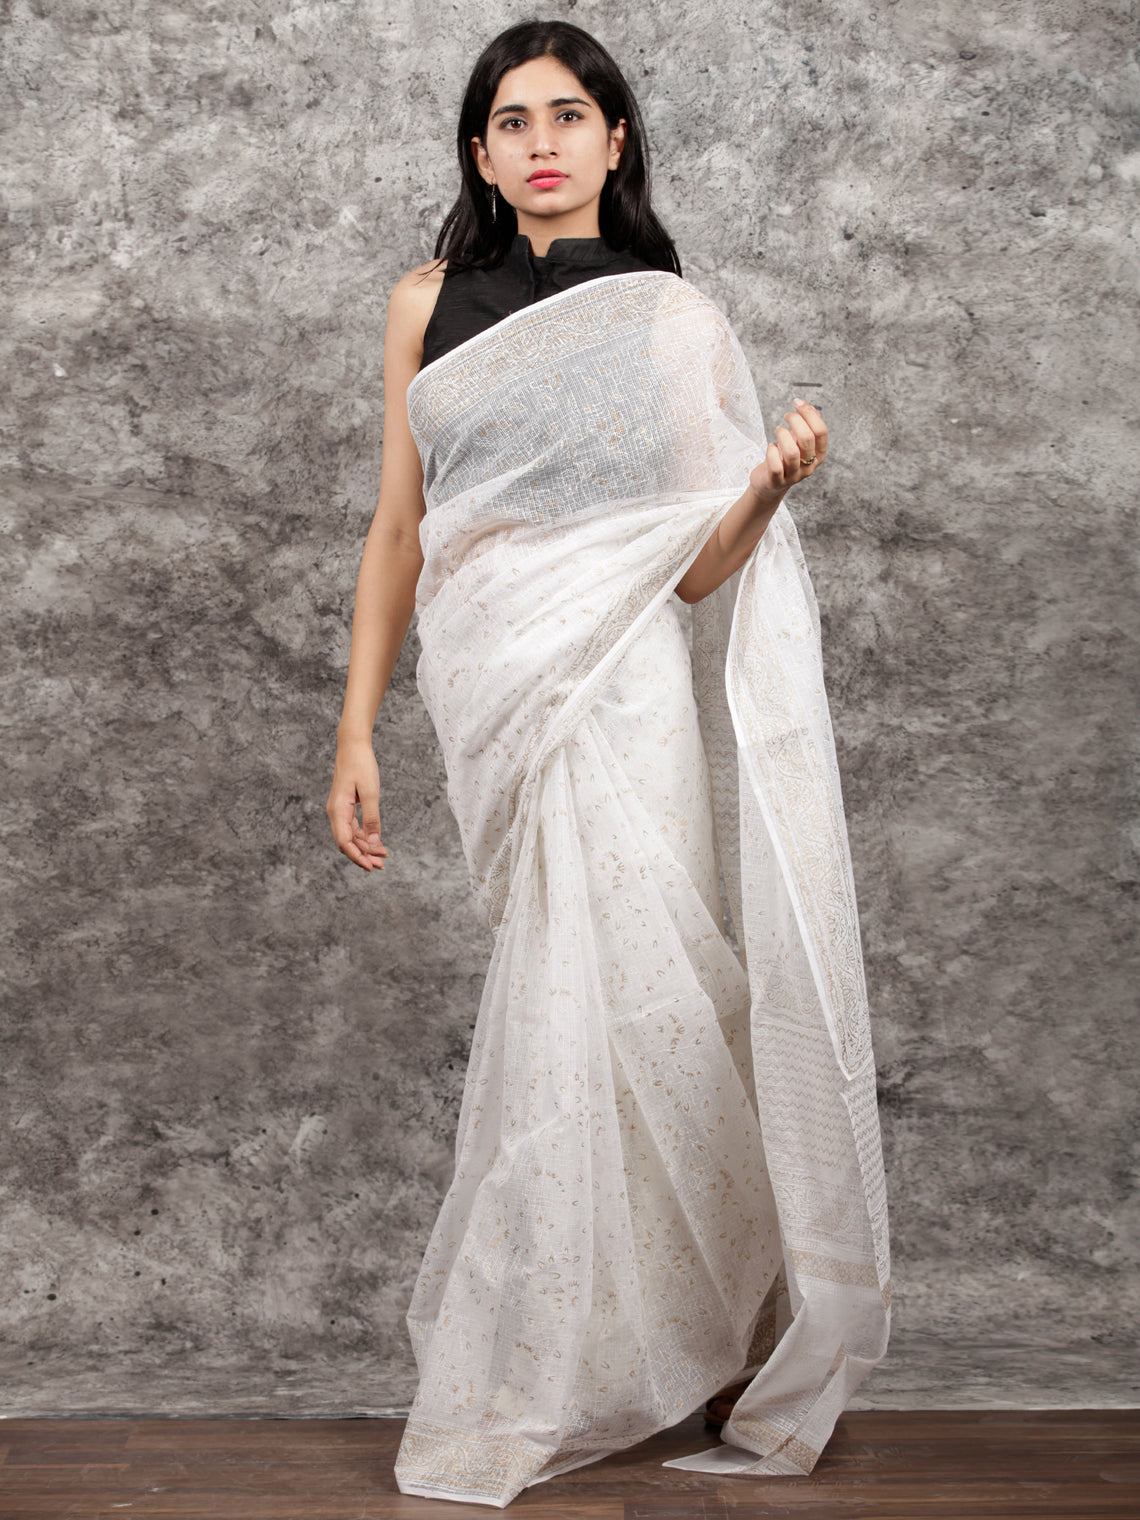 White Silver Hand Block Printed Kota Doria Saree in Natural Colors - S031703148